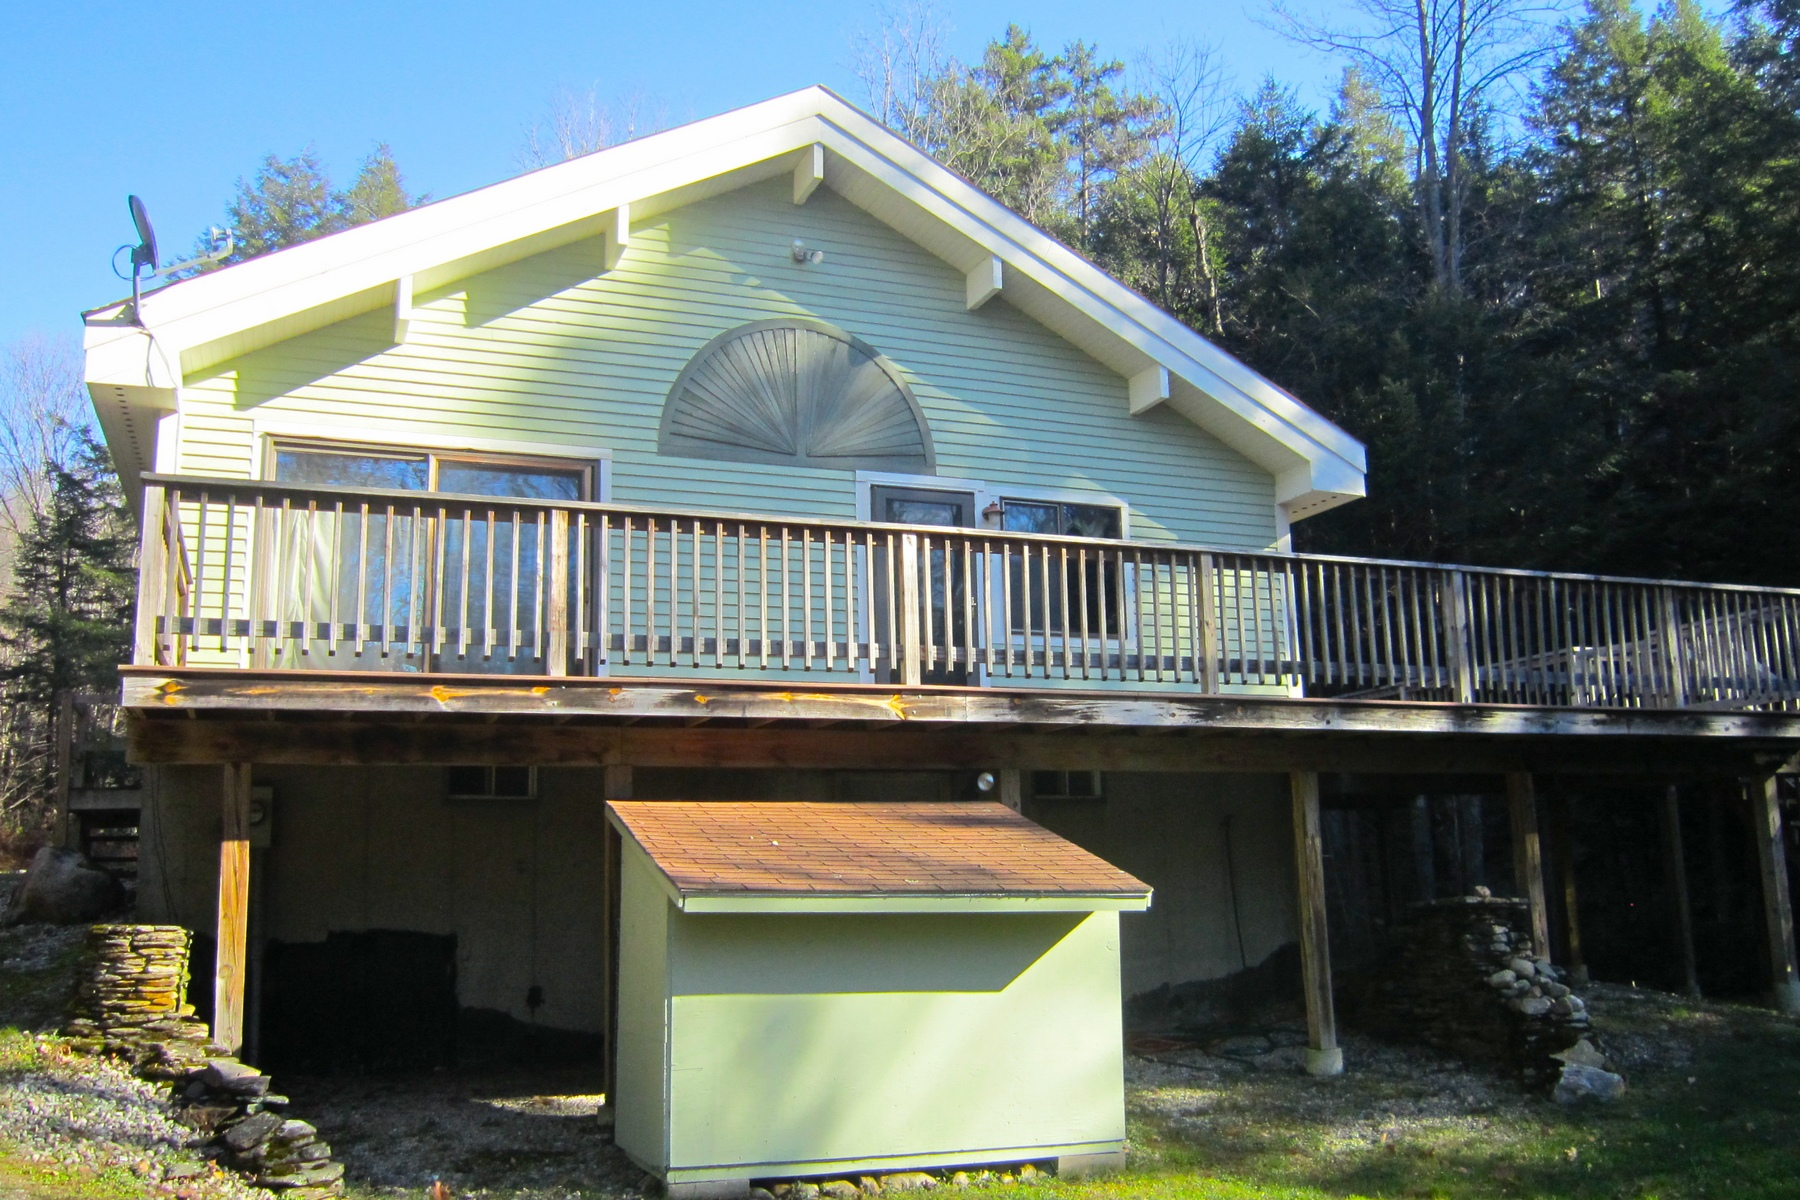 Single Family Home for Sale at Minutes to either Okemo Mountain or Rutland 472 Freeman Brook Rd Mount Holly, Vermont, 05758 United States